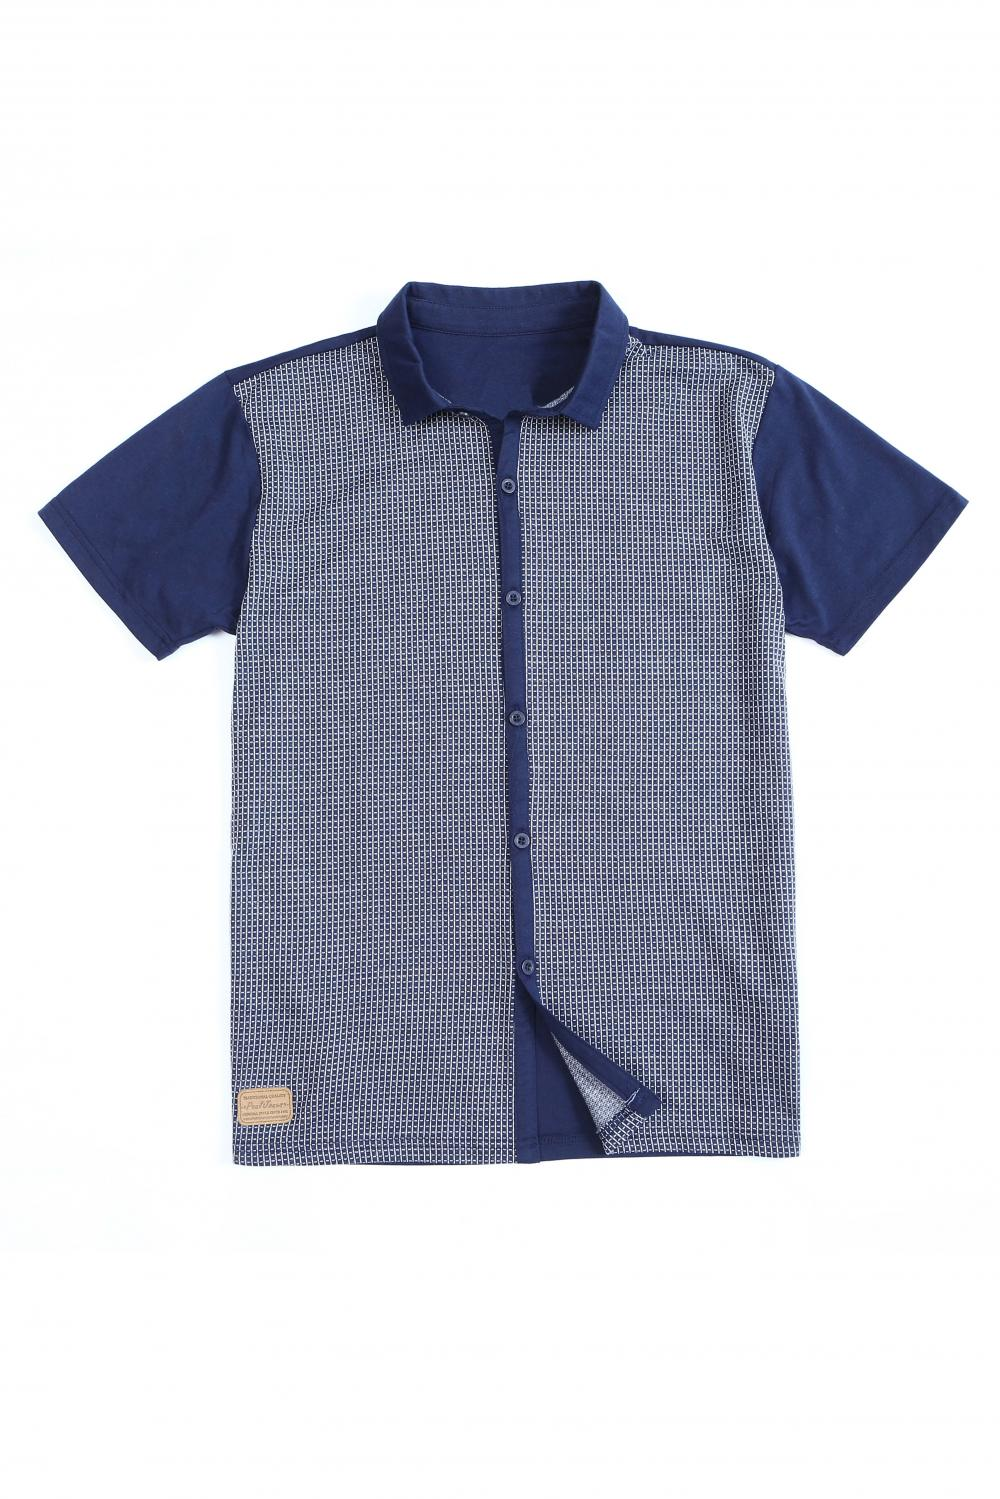 Men's knit shirts